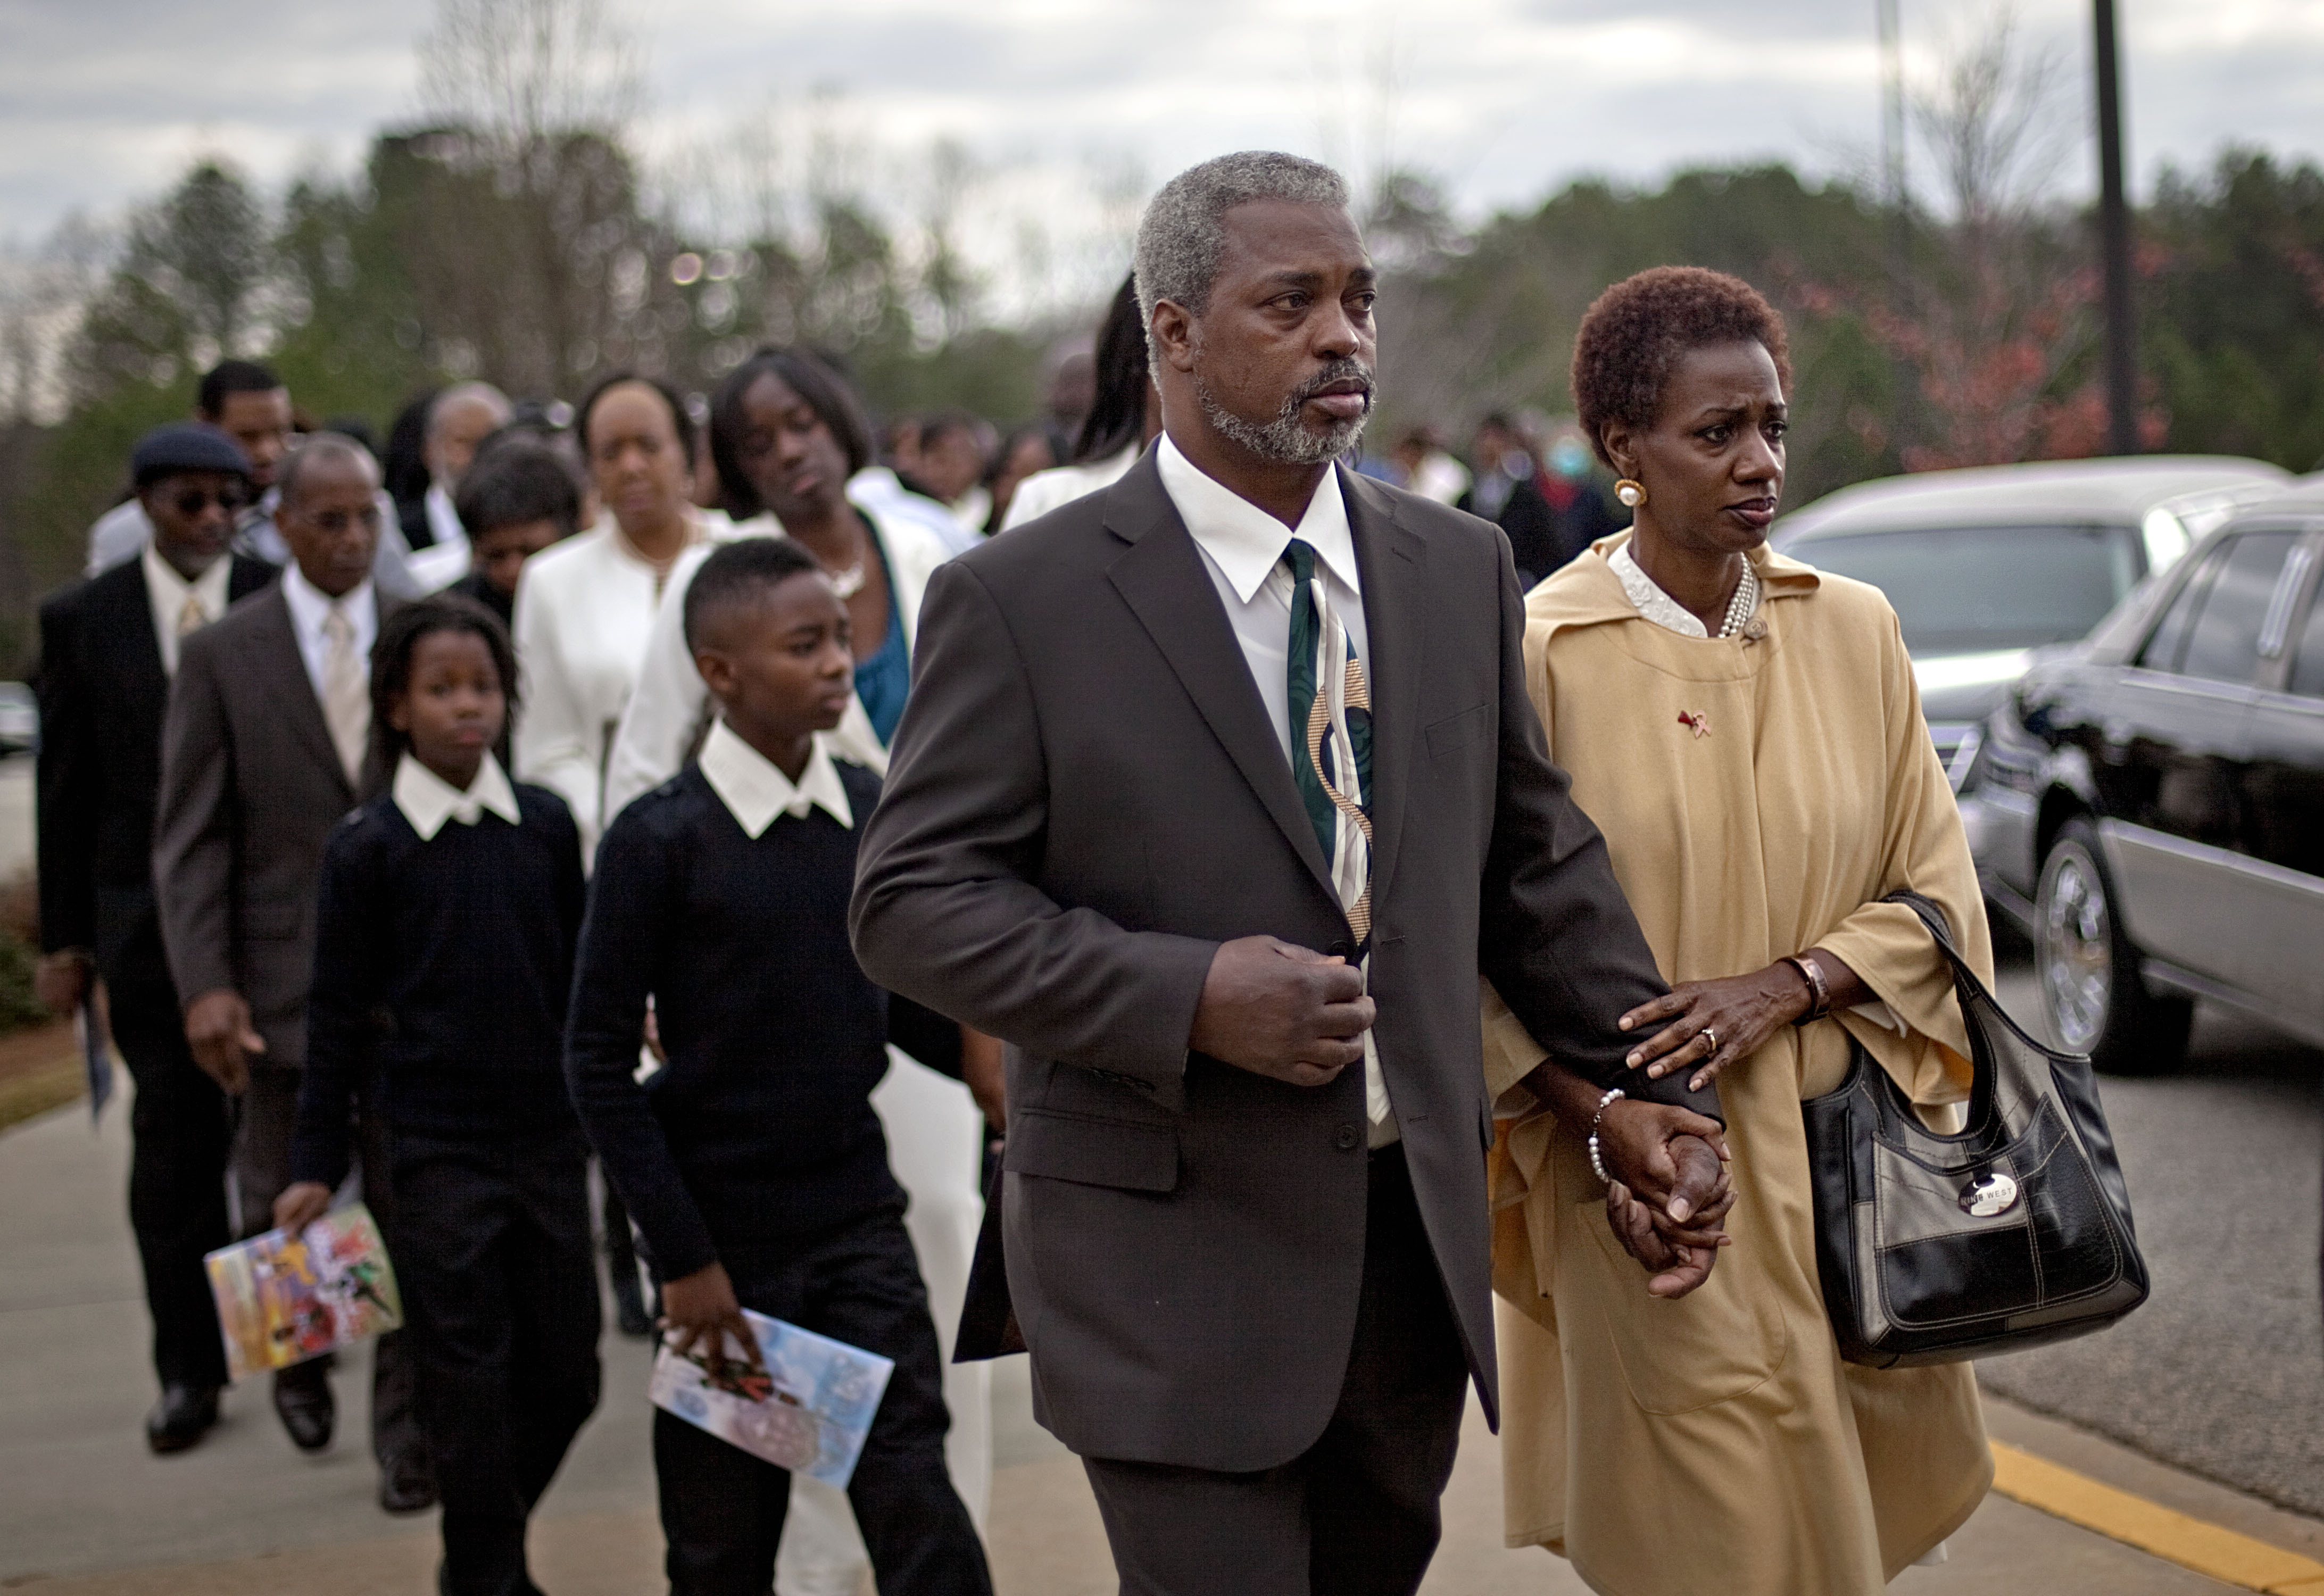 FILE -In this Wednesday, Nov. 30, 2011 file photo, Robert Champion Sr., left, and his wife, Pam lead a procession into the funeral service for their son, Florida A&M University band member Robert Champion, in Decatur, Ga. The parents of a slain Florida A&M University drum major are concerned because the investigation into his hazing death three months ago in Orlando has not produced any arrests. The attorney for Robert Champion Sr. and Pamela Champion says they're worried because charges have been filed in two other FAMU band hazing cases that were less serious. (AP Photo/David Goldman, File)